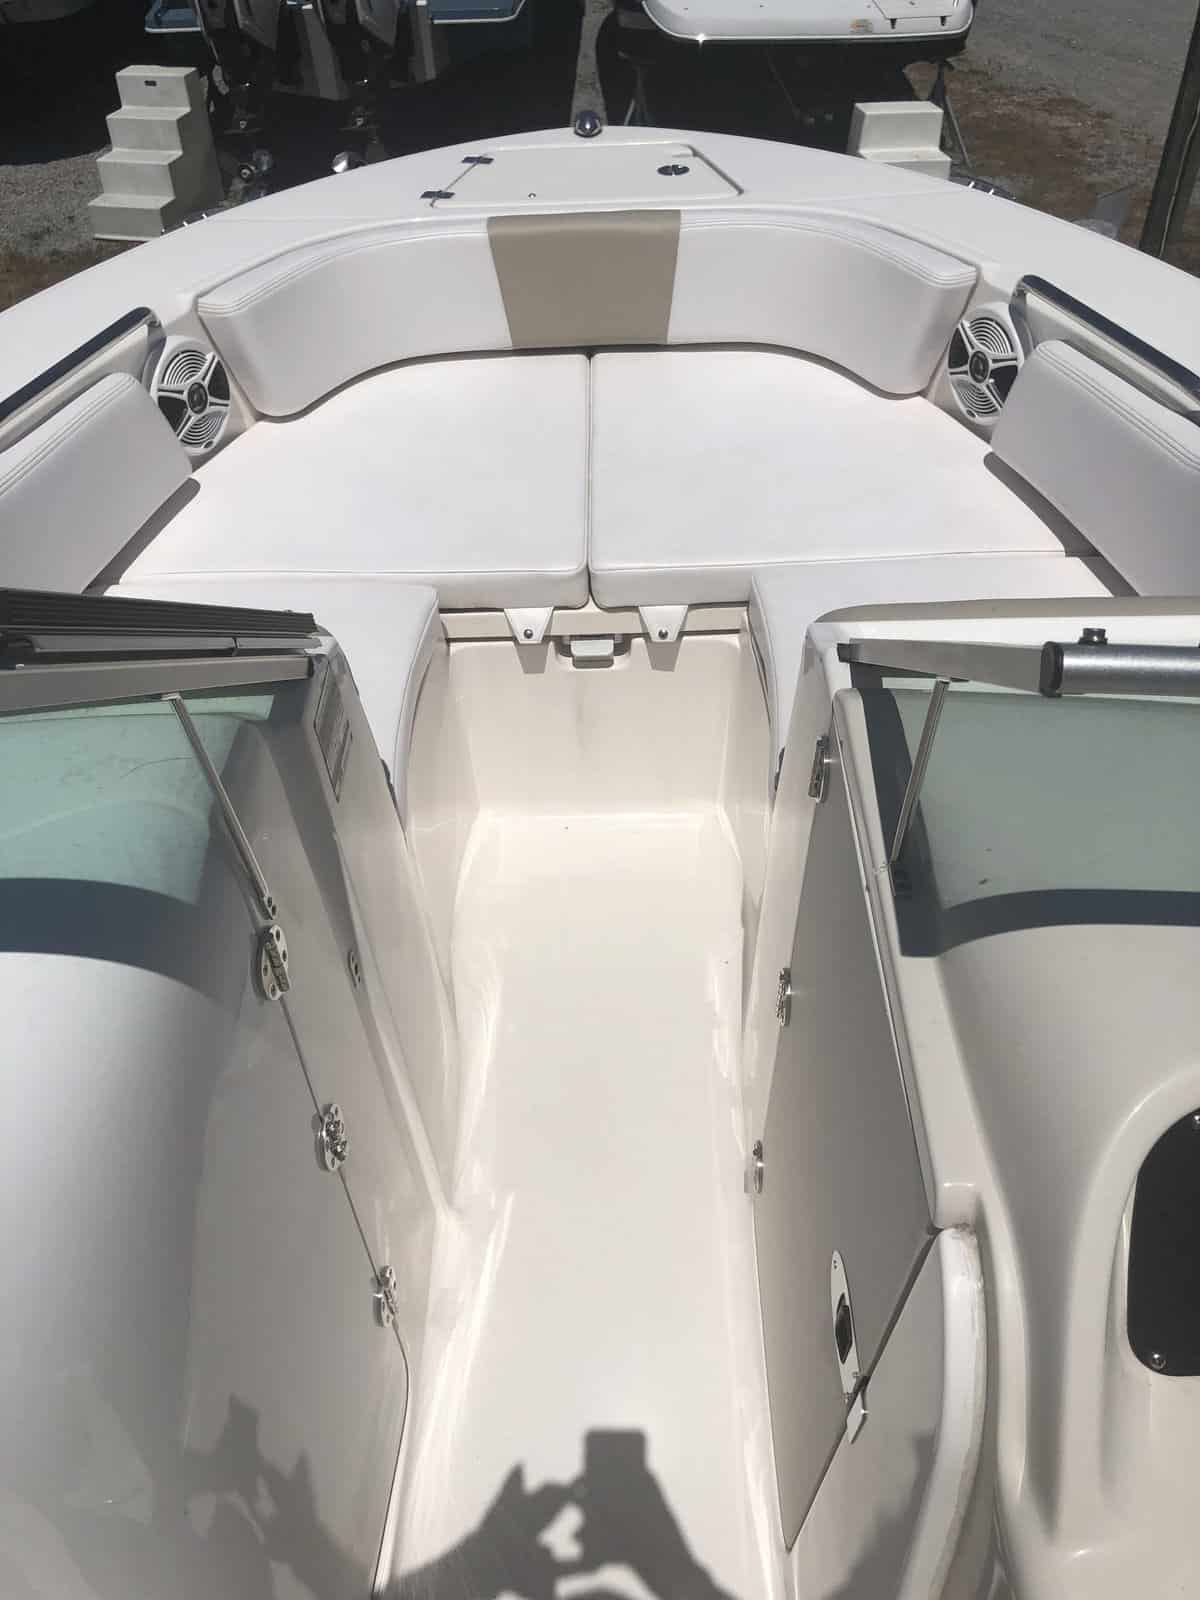 NEW 2018 Robalo R207 - Long Island, NY Boat Dealer | Boat Sales & Rentals